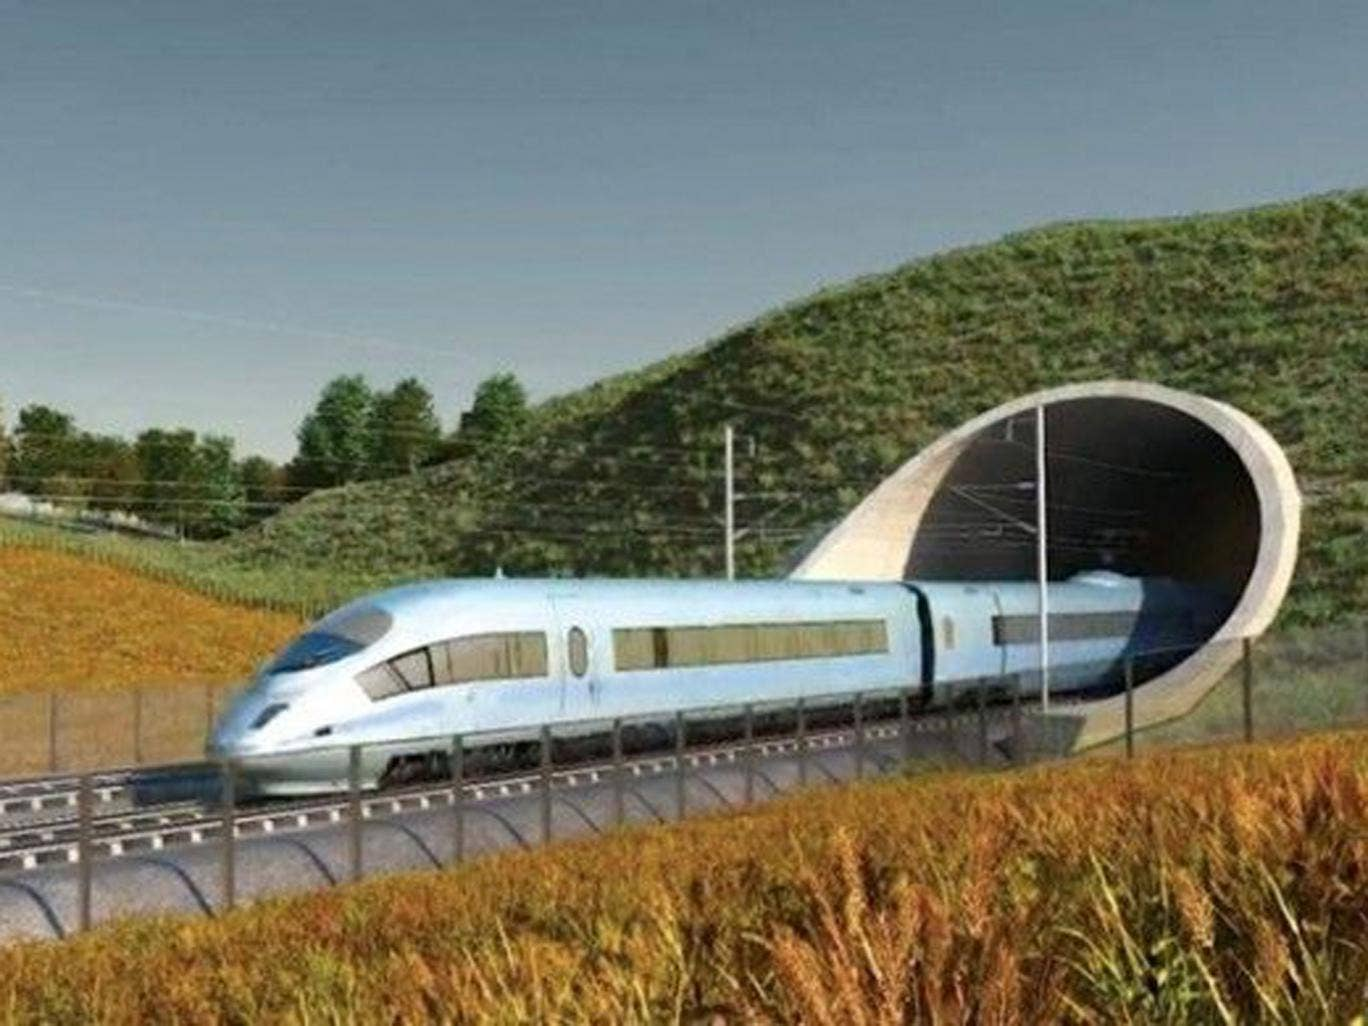 A powerful new lobby group wants 'wider social benefits' from the construction of HS2